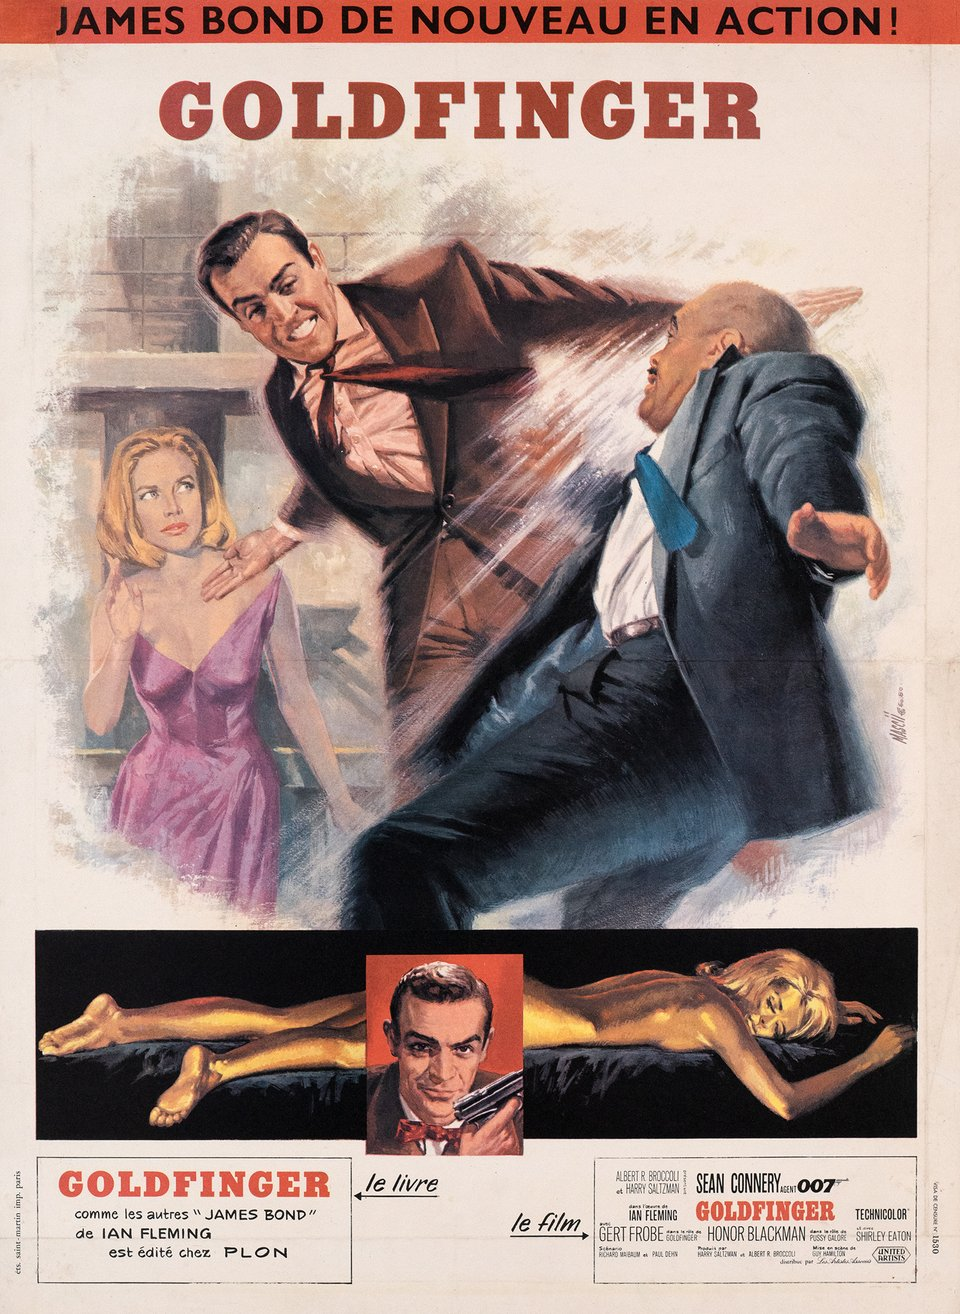 James Bond 007, Goldfinger – Vintage poster – Jean MASCII – 1965